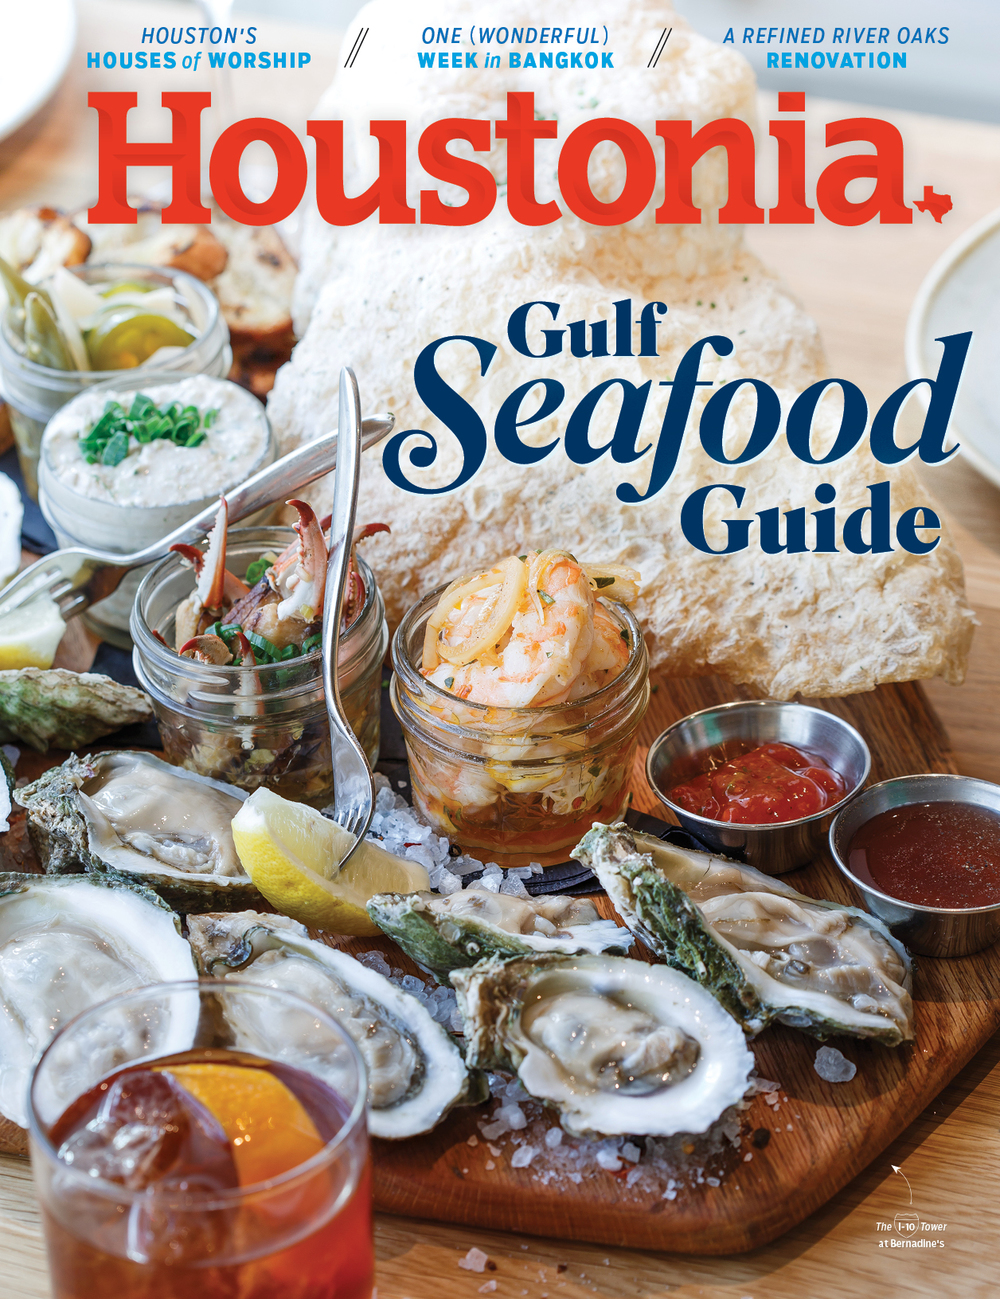 0316_Houstonia_Cover.jpg